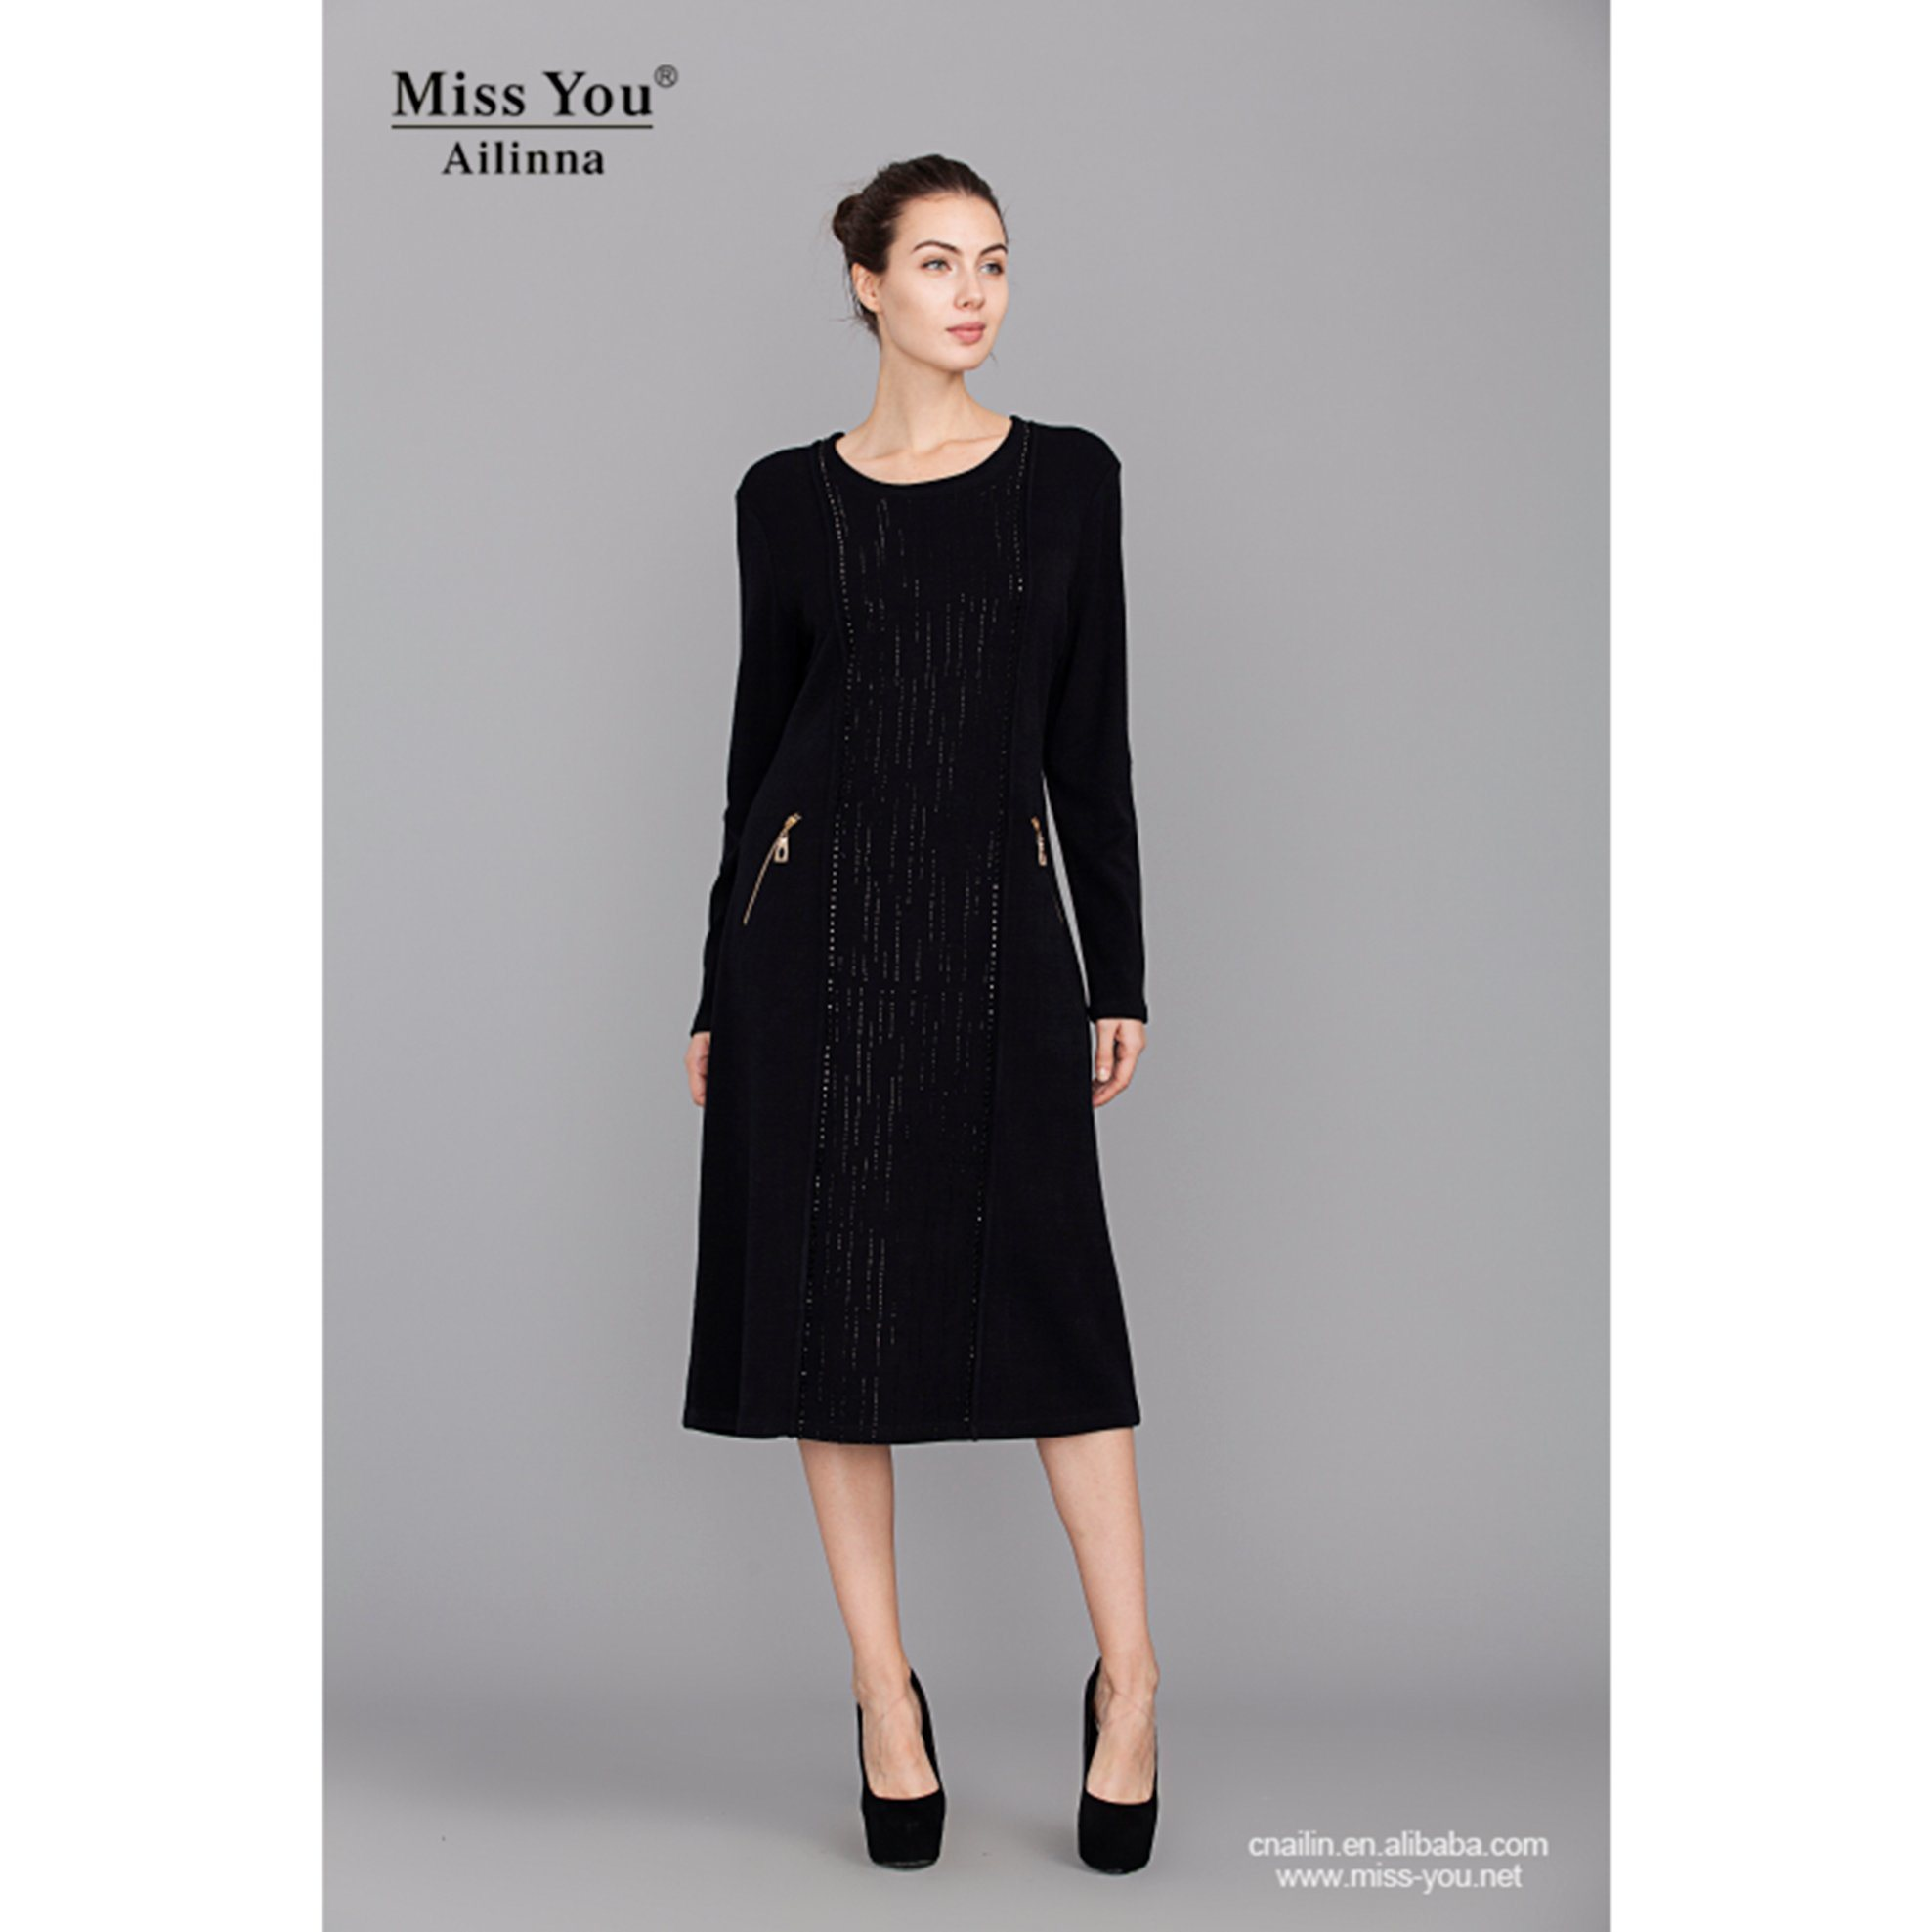 Miss You Ailinna 780163 Ladies Long Black Dress Wool Warm Dress